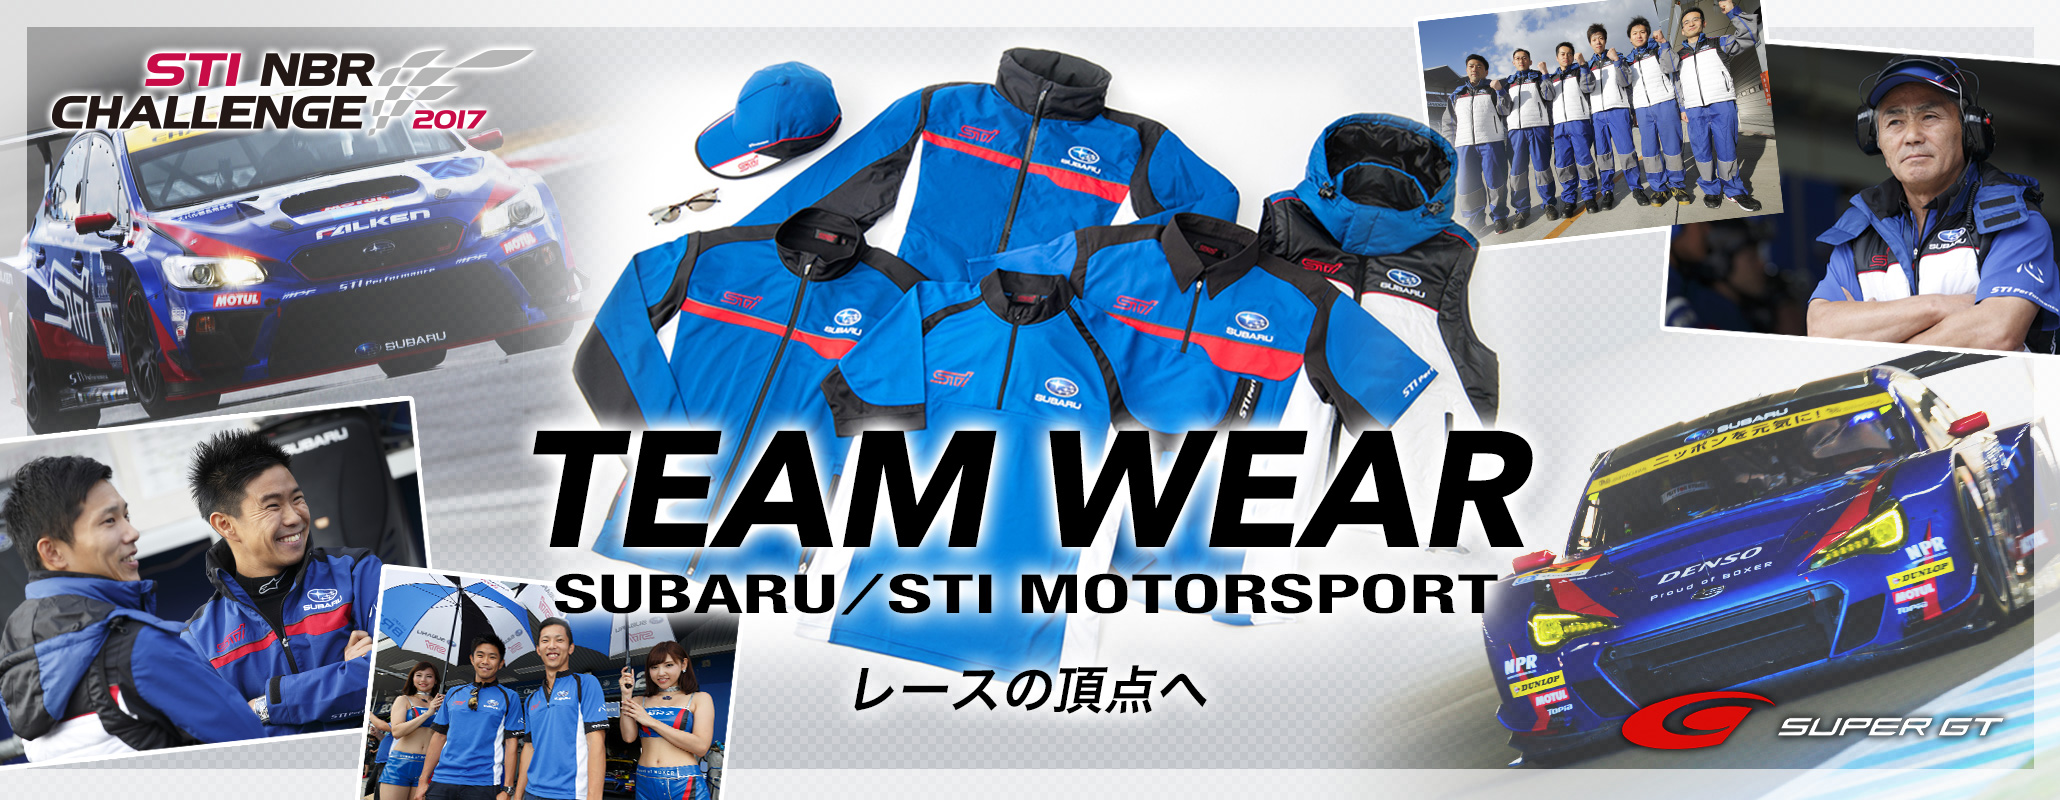 SUBARU/STI MOTORSPORTS TEAM WEAR